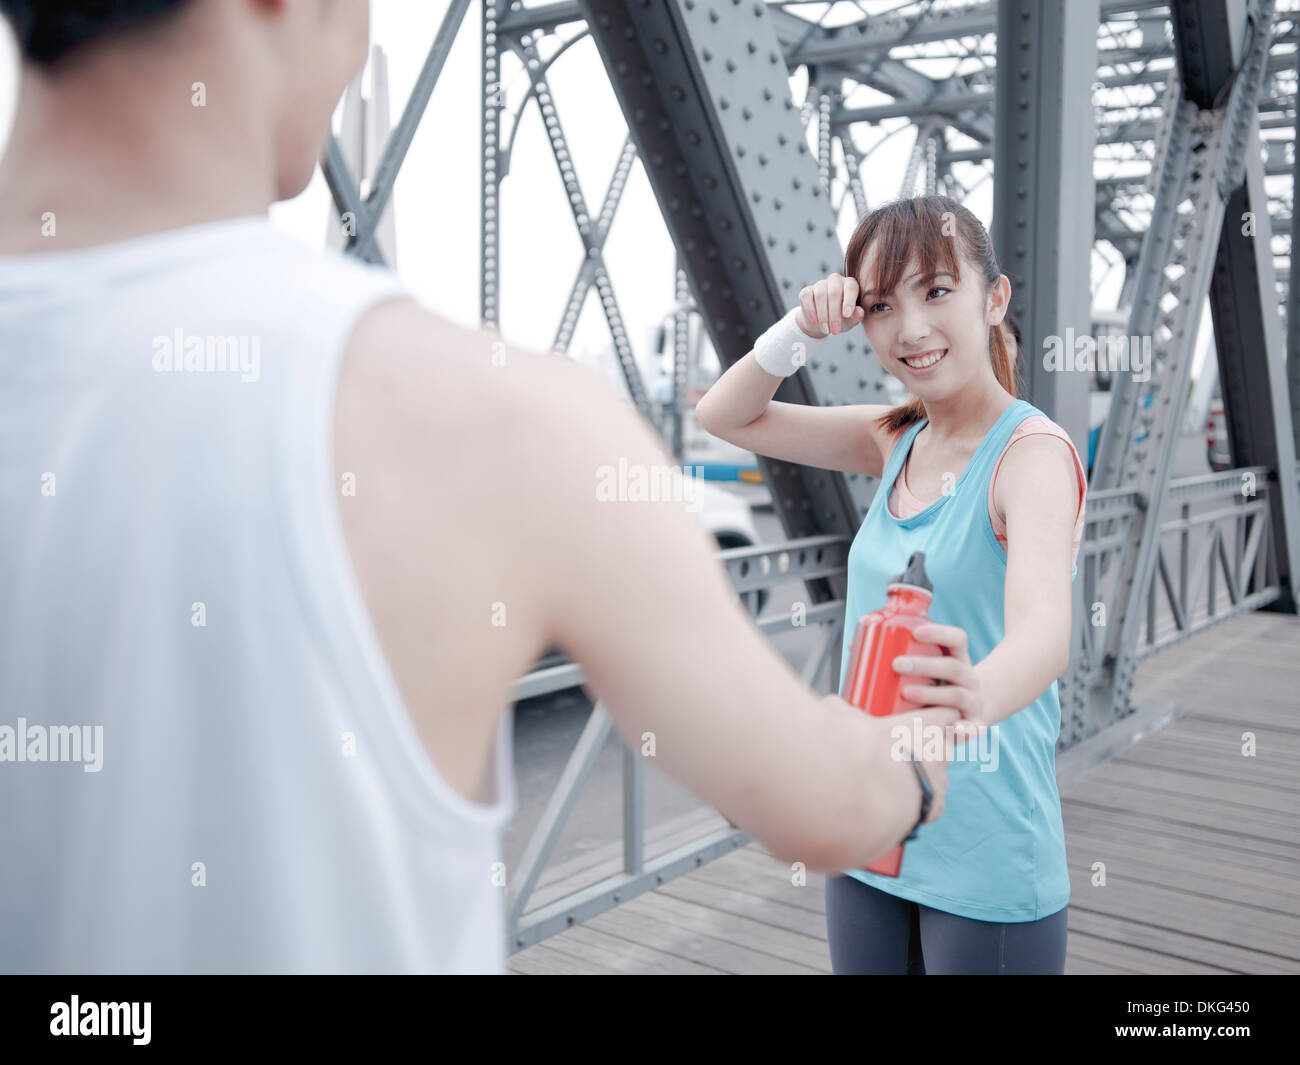 Male jogger passing water bottle to female companion - Stock Image